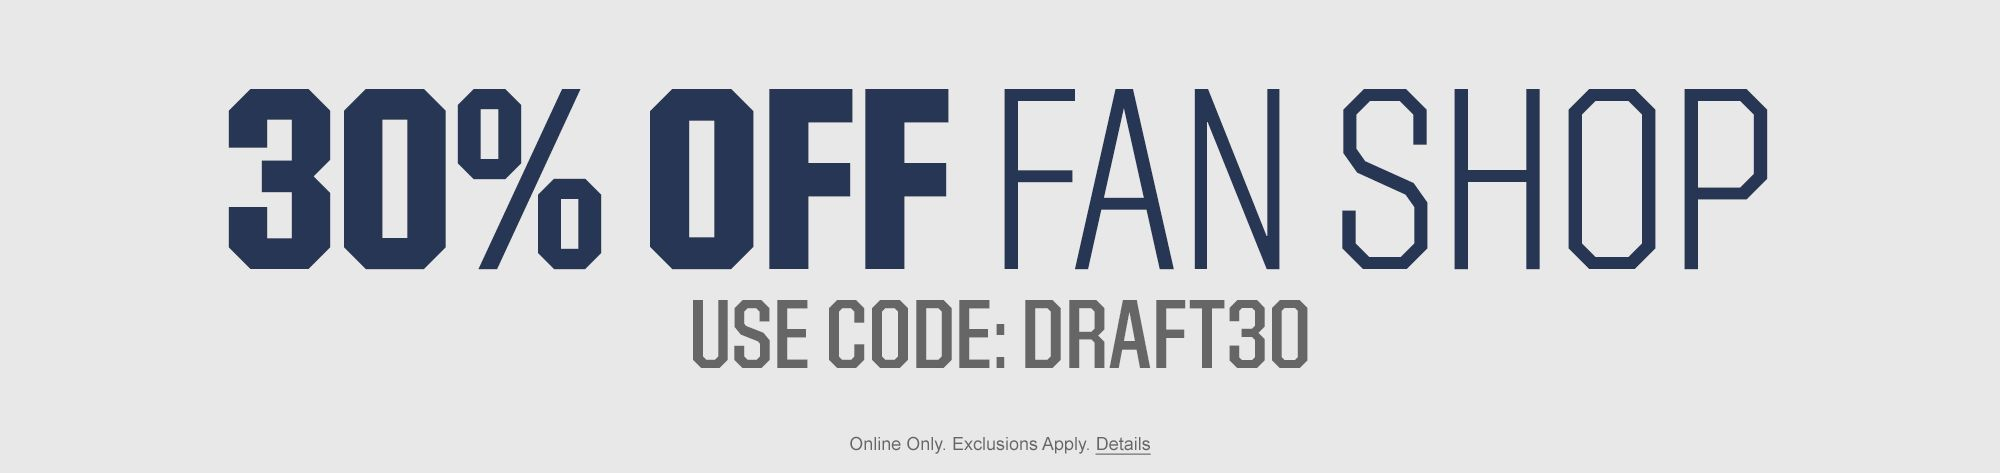 30% off Fan Gear - Use Code DRAFT30